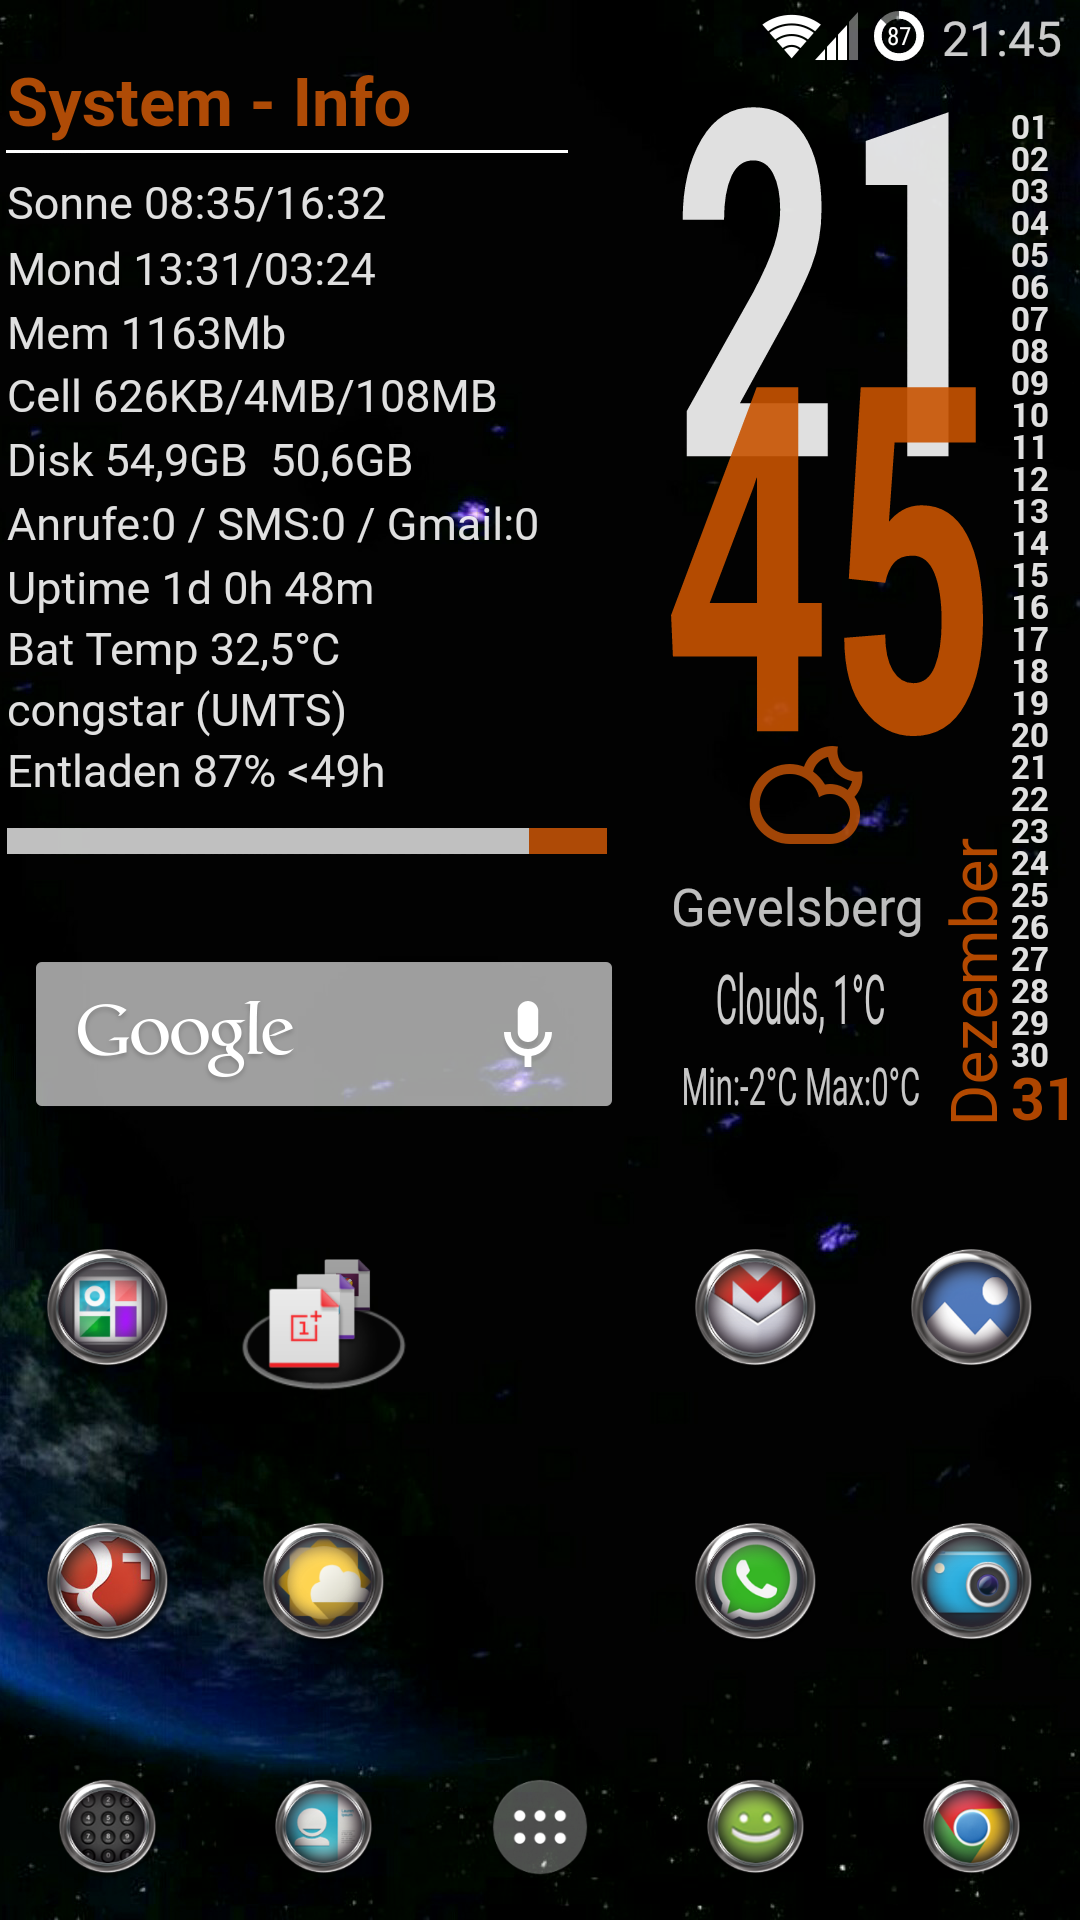 Screenshot_2014-12-31-21-45-56.png